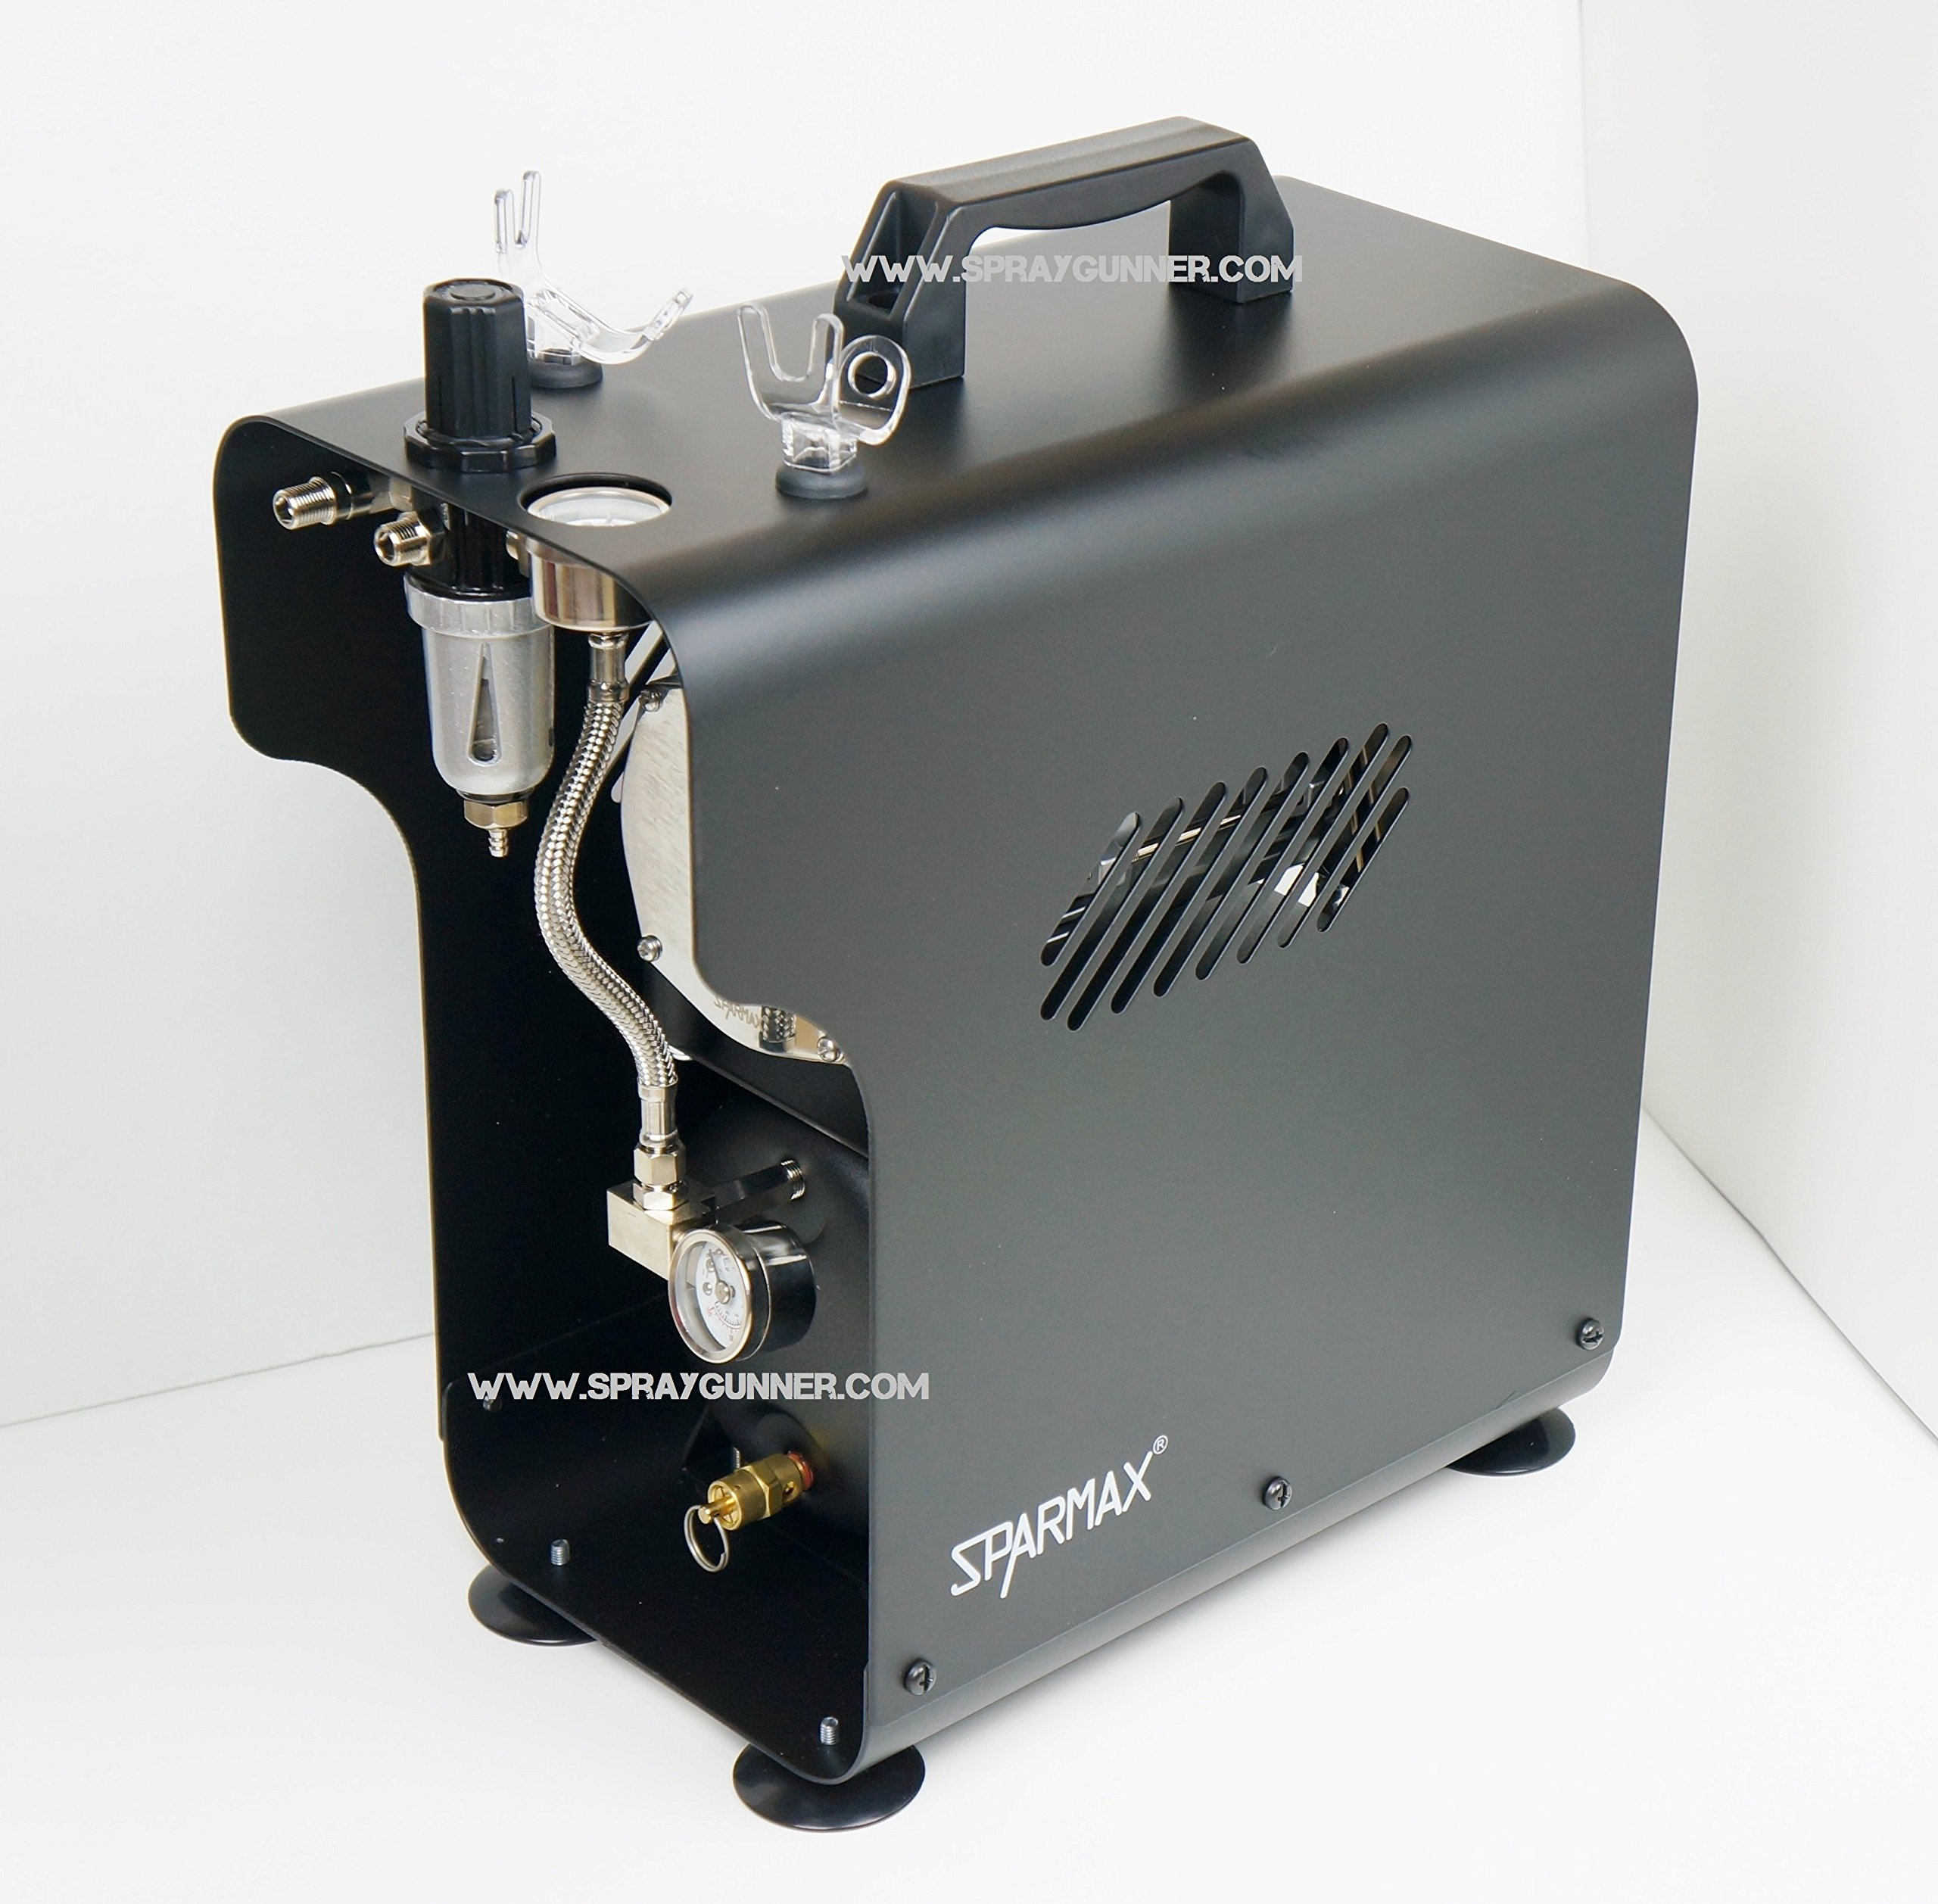 Compressor for airbrush Sparmax TC-620X up to 32 LPM with auto-off function and 2 braided hoses included! by SprayGunner